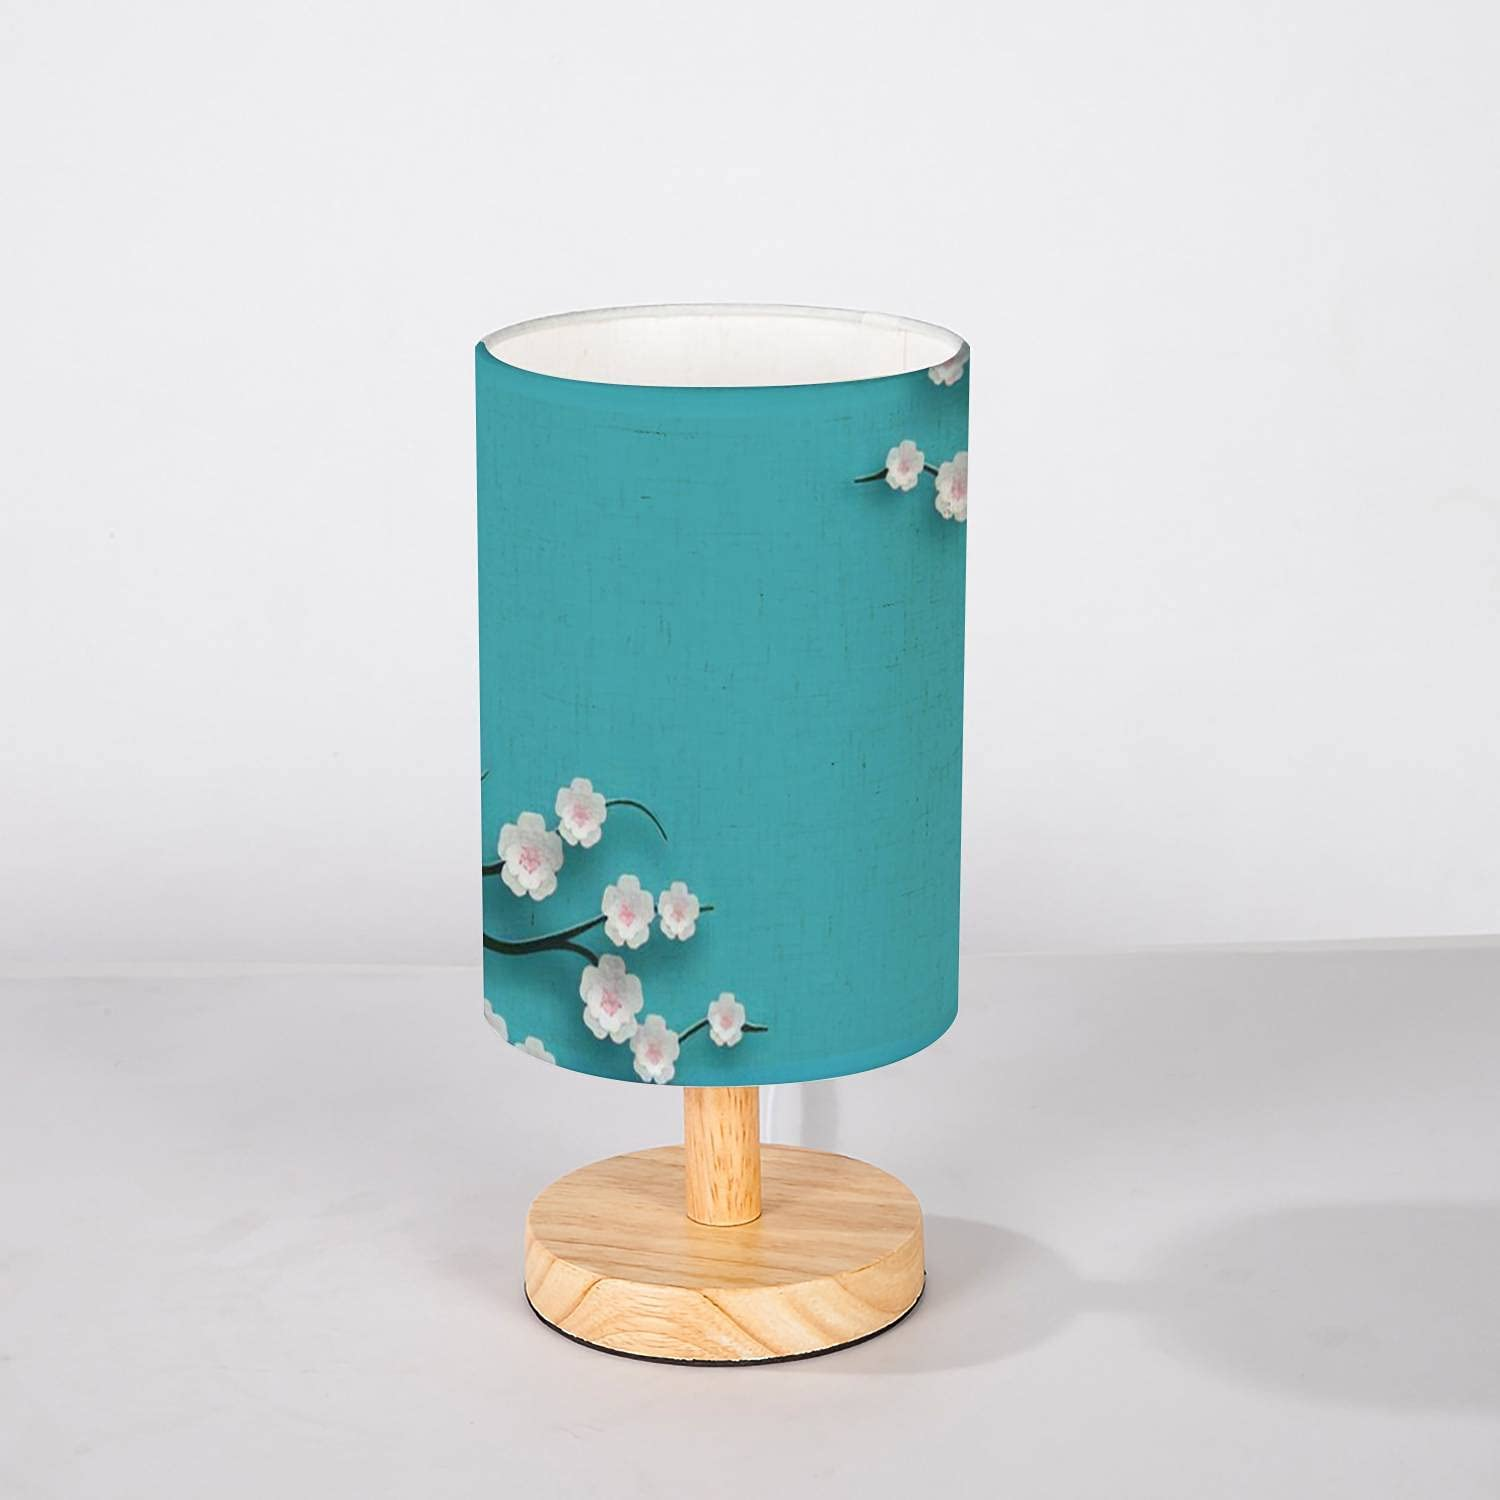 Minimalist Bedside Table Lamp Floral Decorated Oklahoma City Mall Bloomi Background Year-end annual account